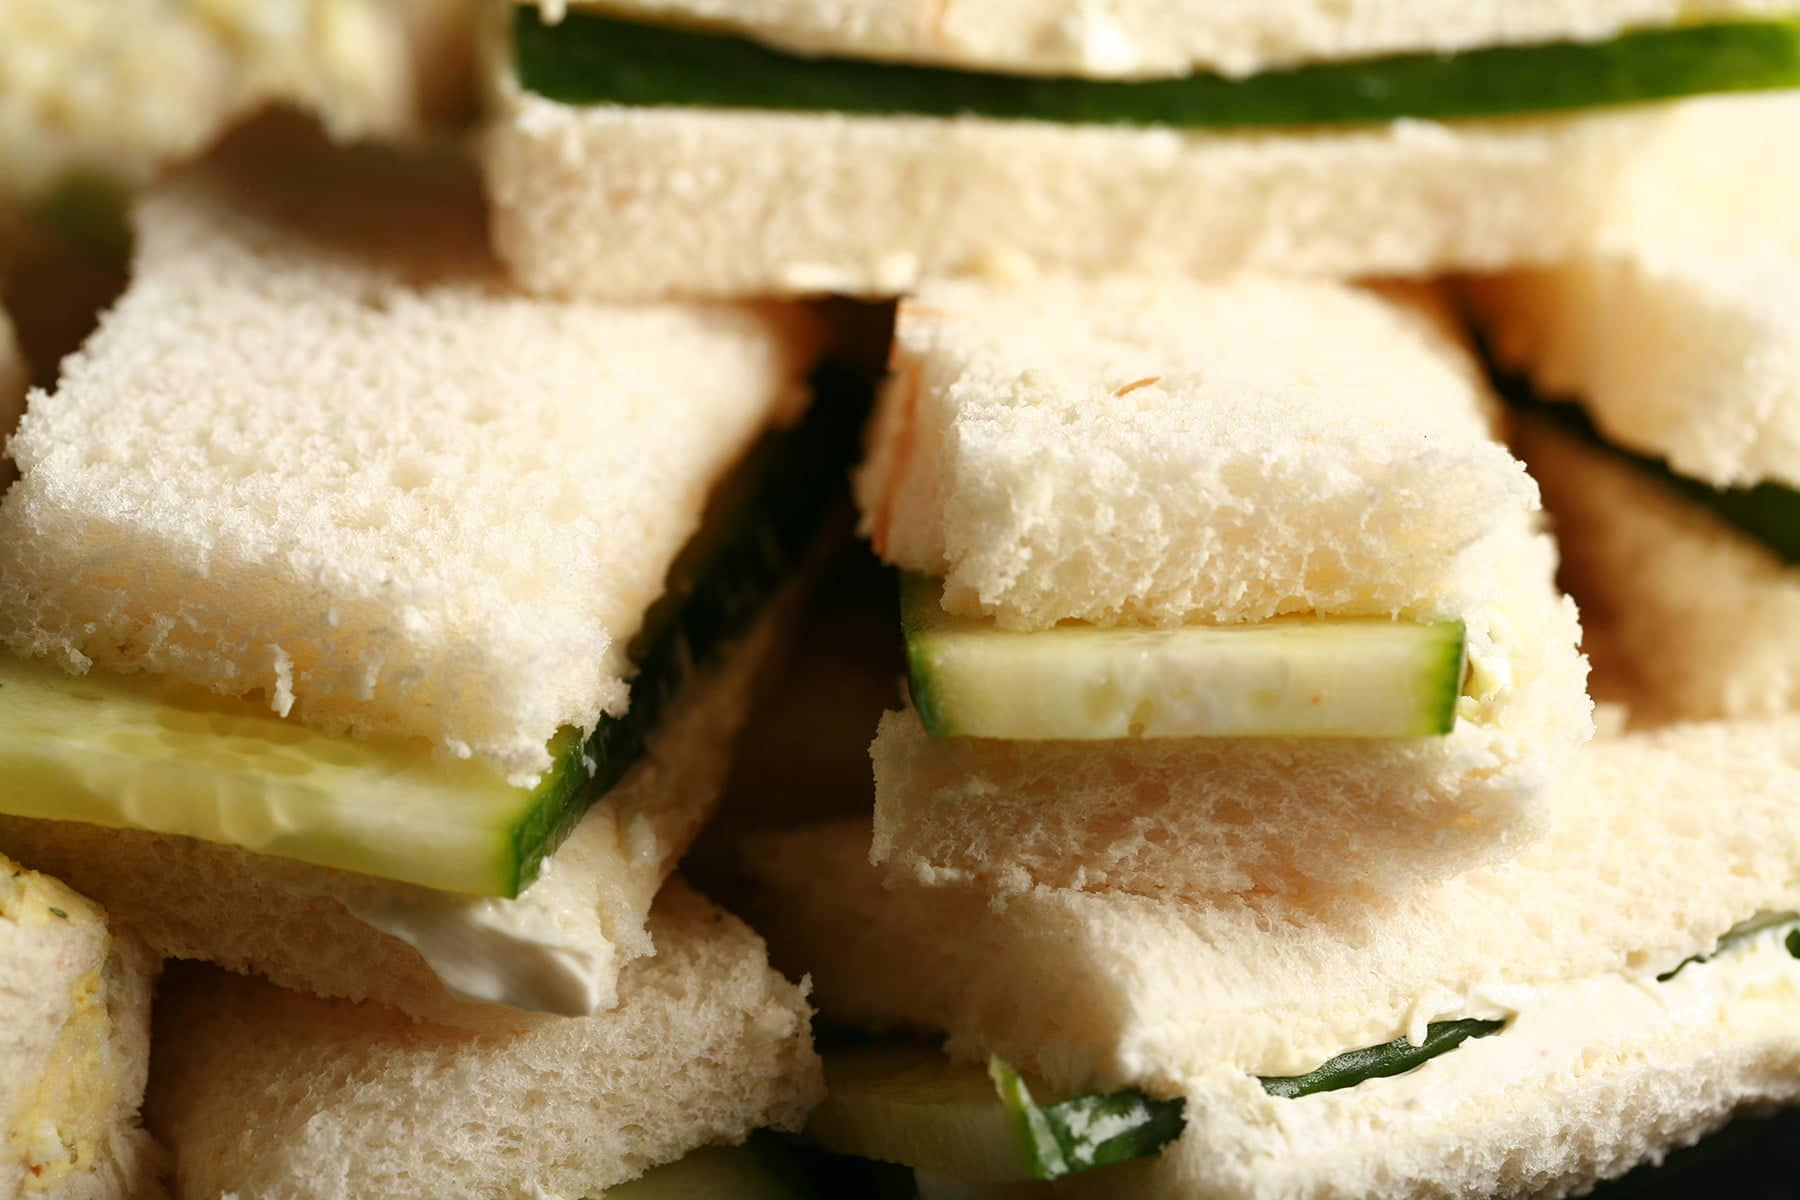 A close up view of cucumber cream cheese finger sandwiches.